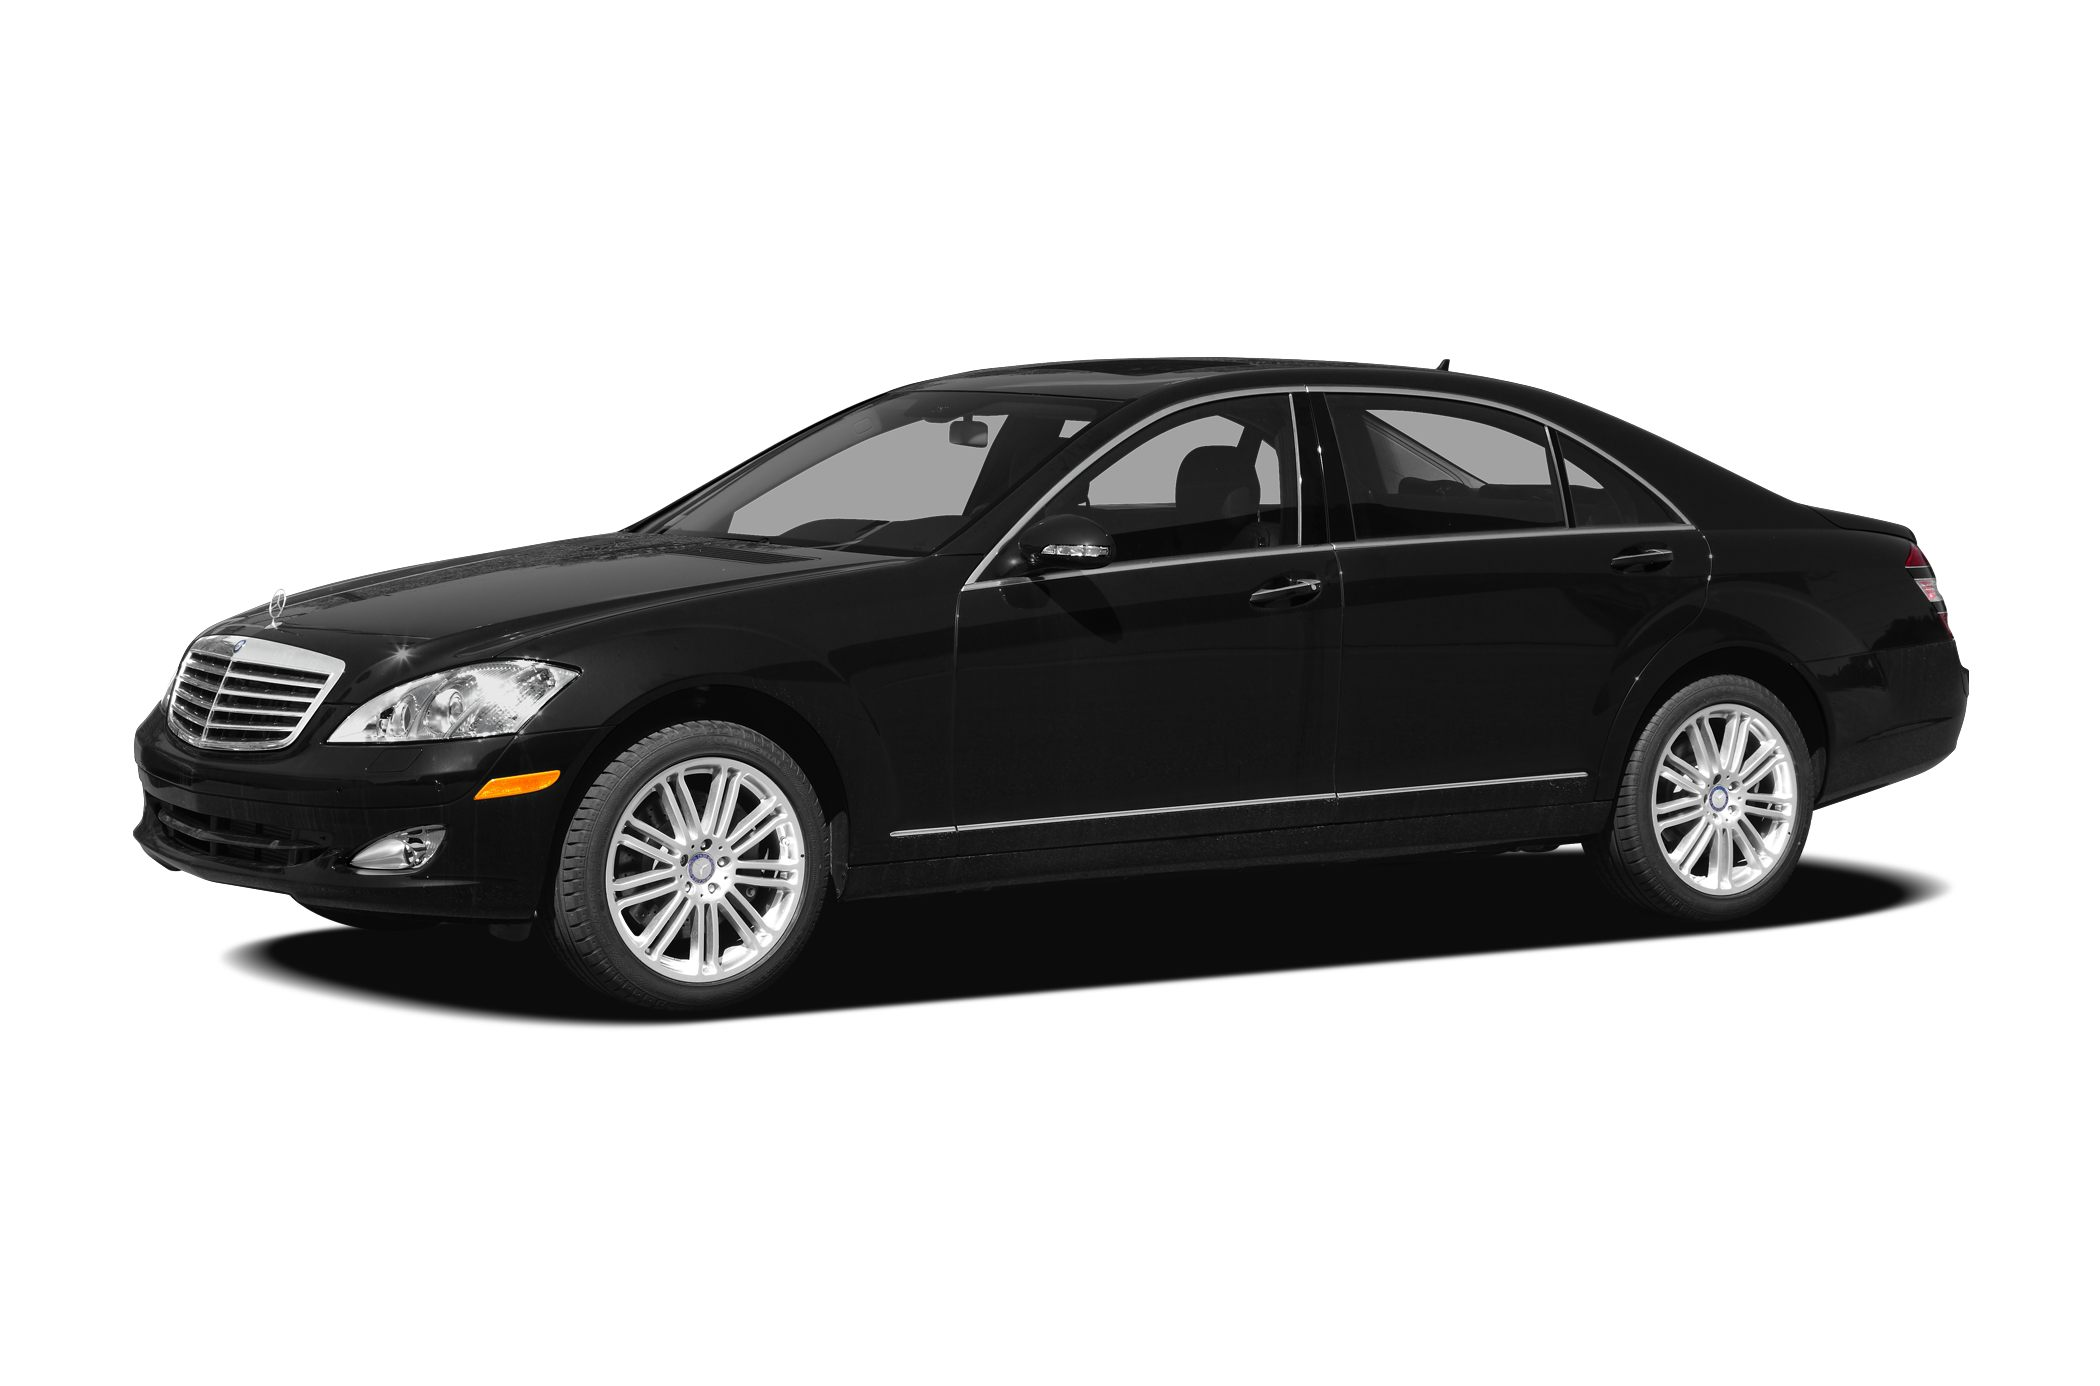 2008 Mercedes-Benz S-Class S550 Sedan for sale in Palm Springs for $32,000 with 56,202 miles